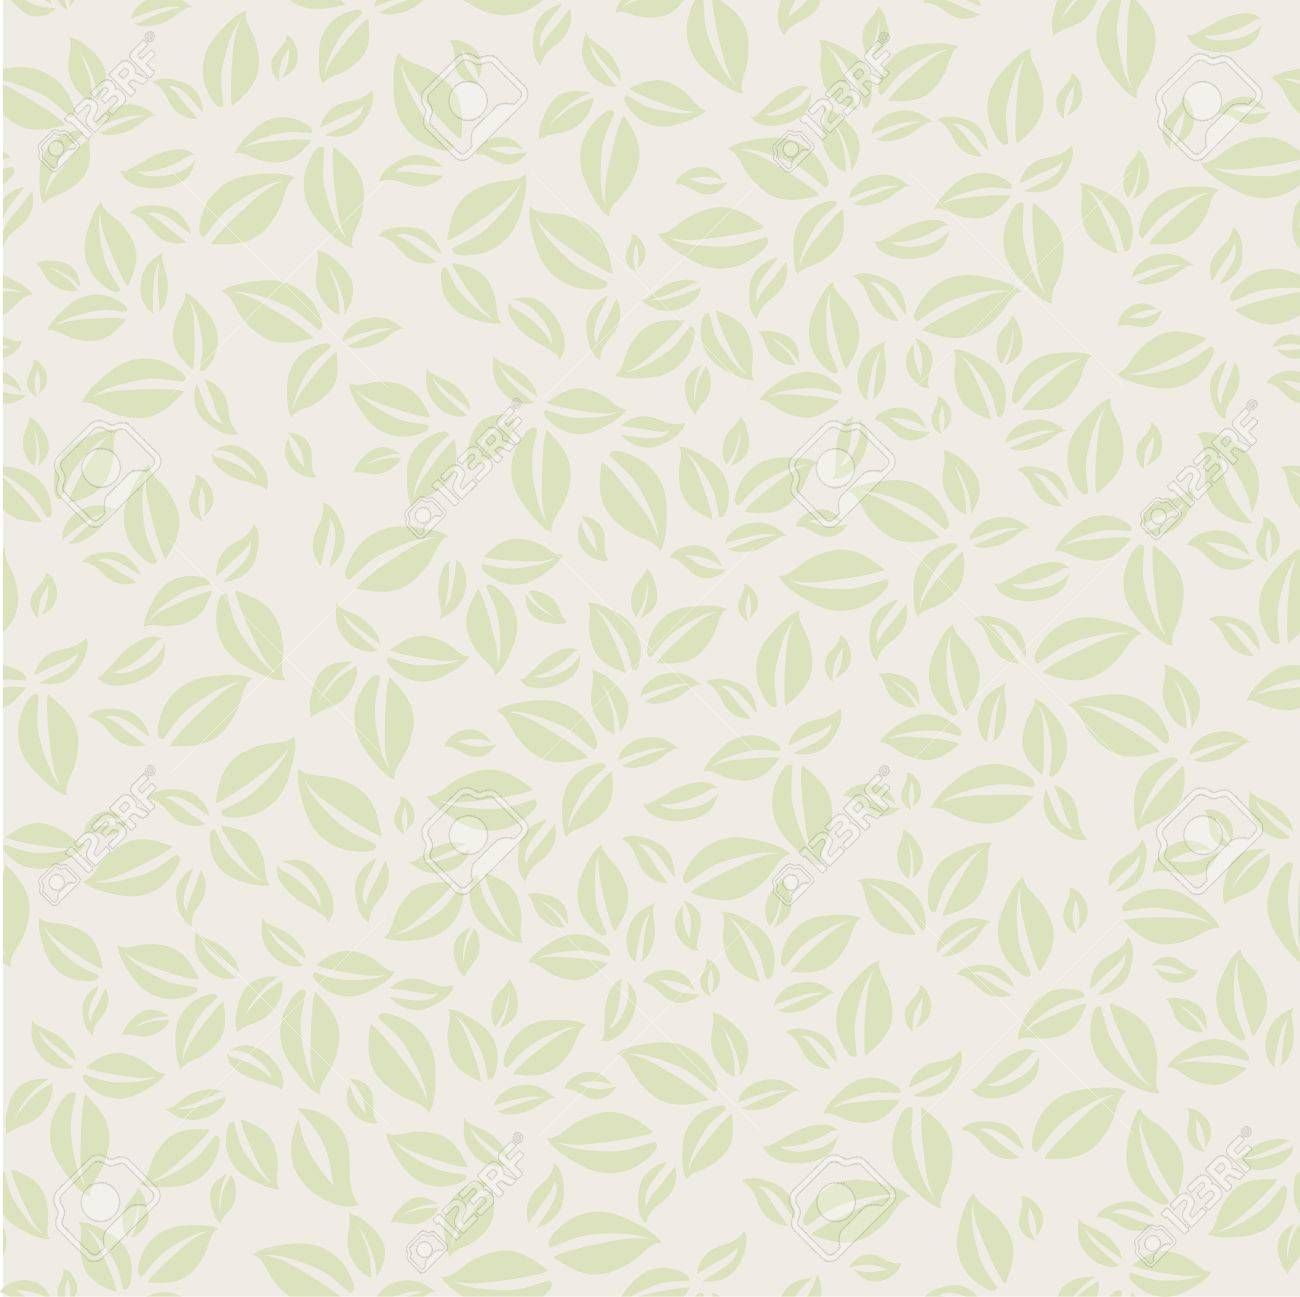 Vintage background pattern with leaves Stock Vector - 18795060